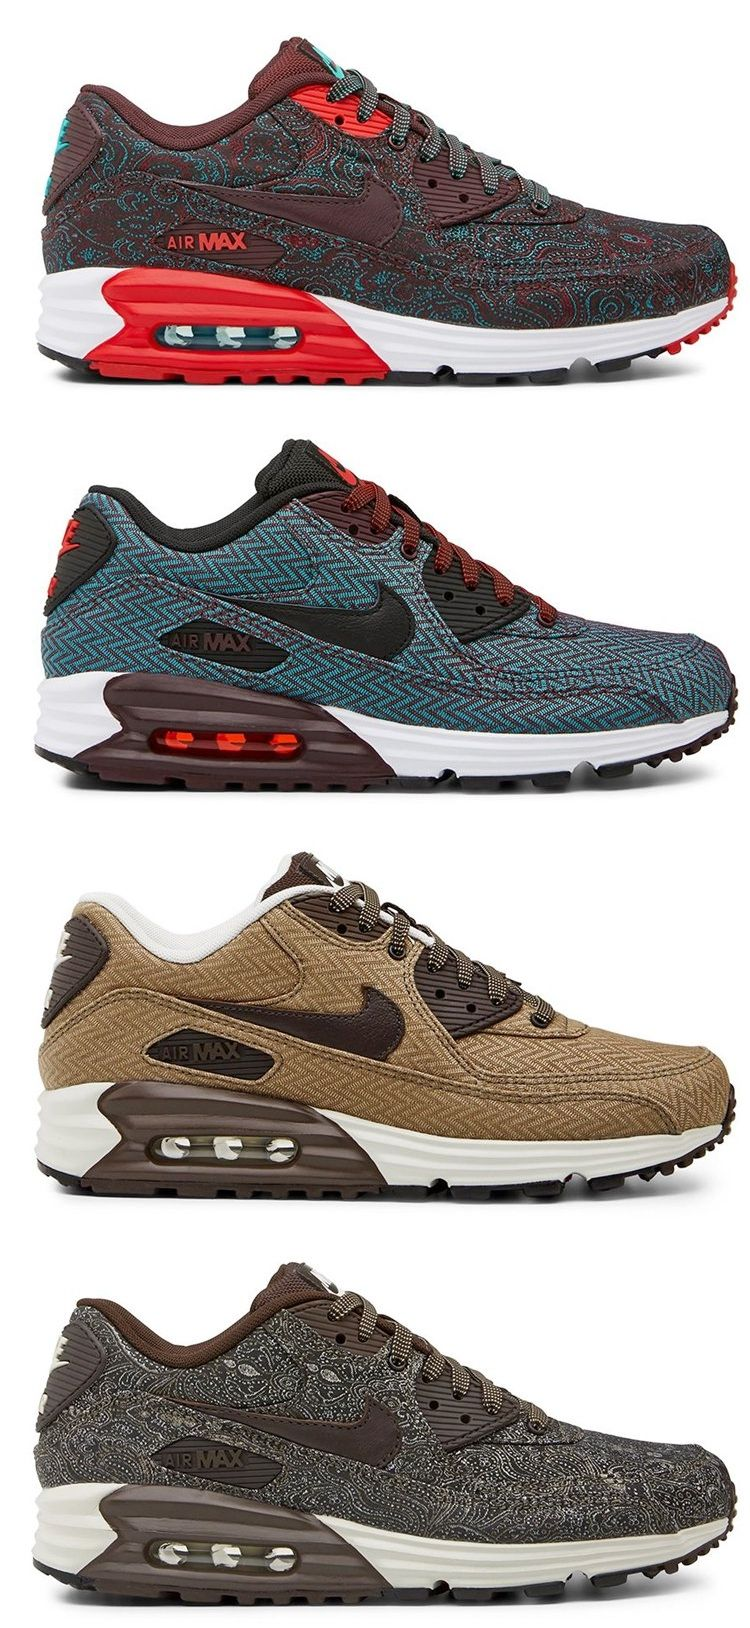 Nike Air Max 90 Older Kids' Shoe. Nike LU